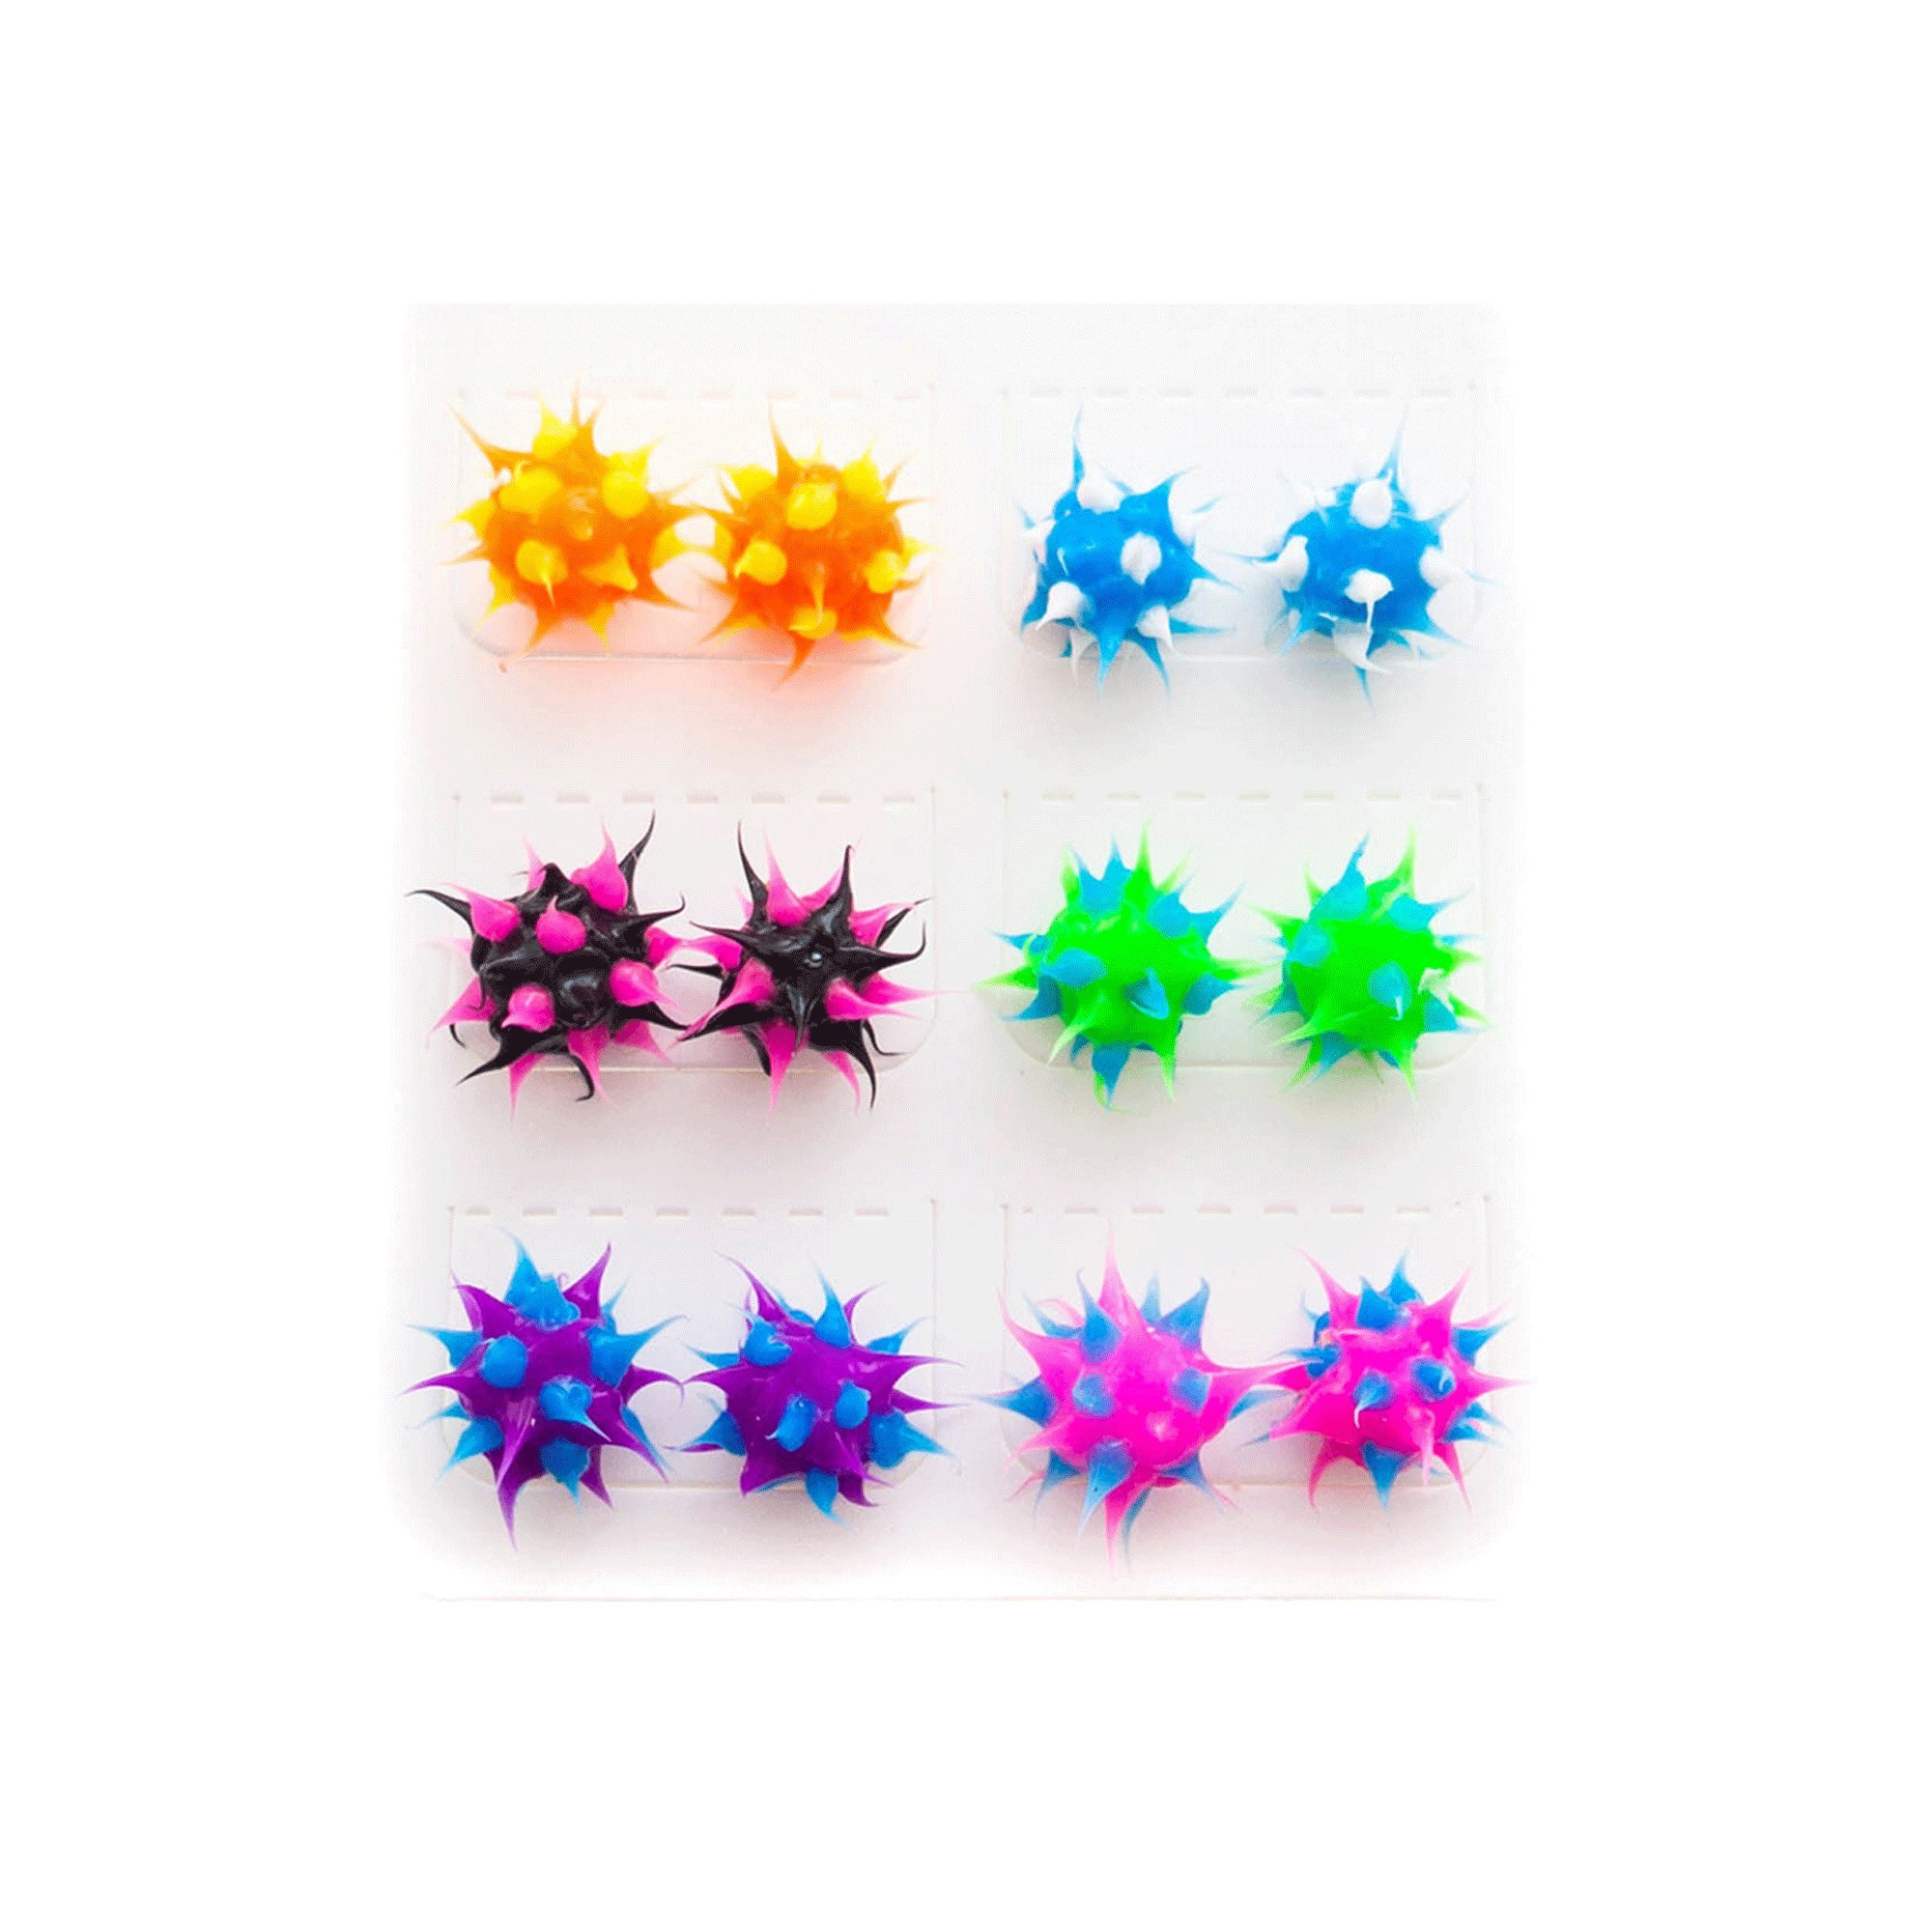 Spiky Silicone Stud Earrings for Women,Teens,Girls,Kids | Multicolored Rave Ball Earrings| Soft Hypoallergenic Silicone Spikes for Fidget and Sensory | Frogsac